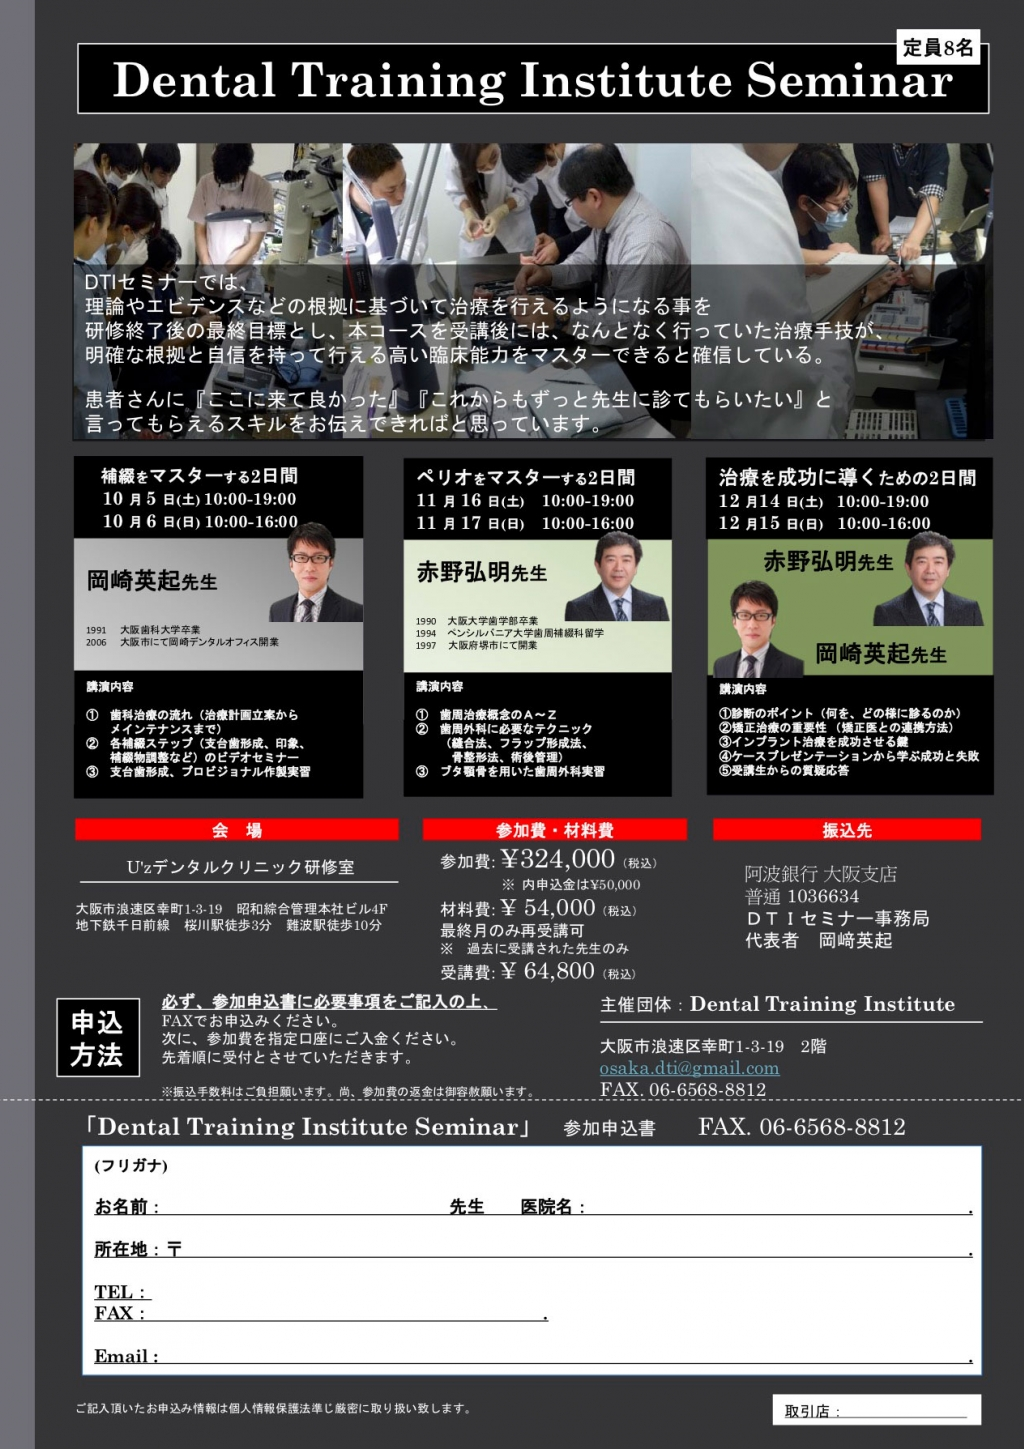 Dental Training Institute Seminar[6日間コース]の画像です